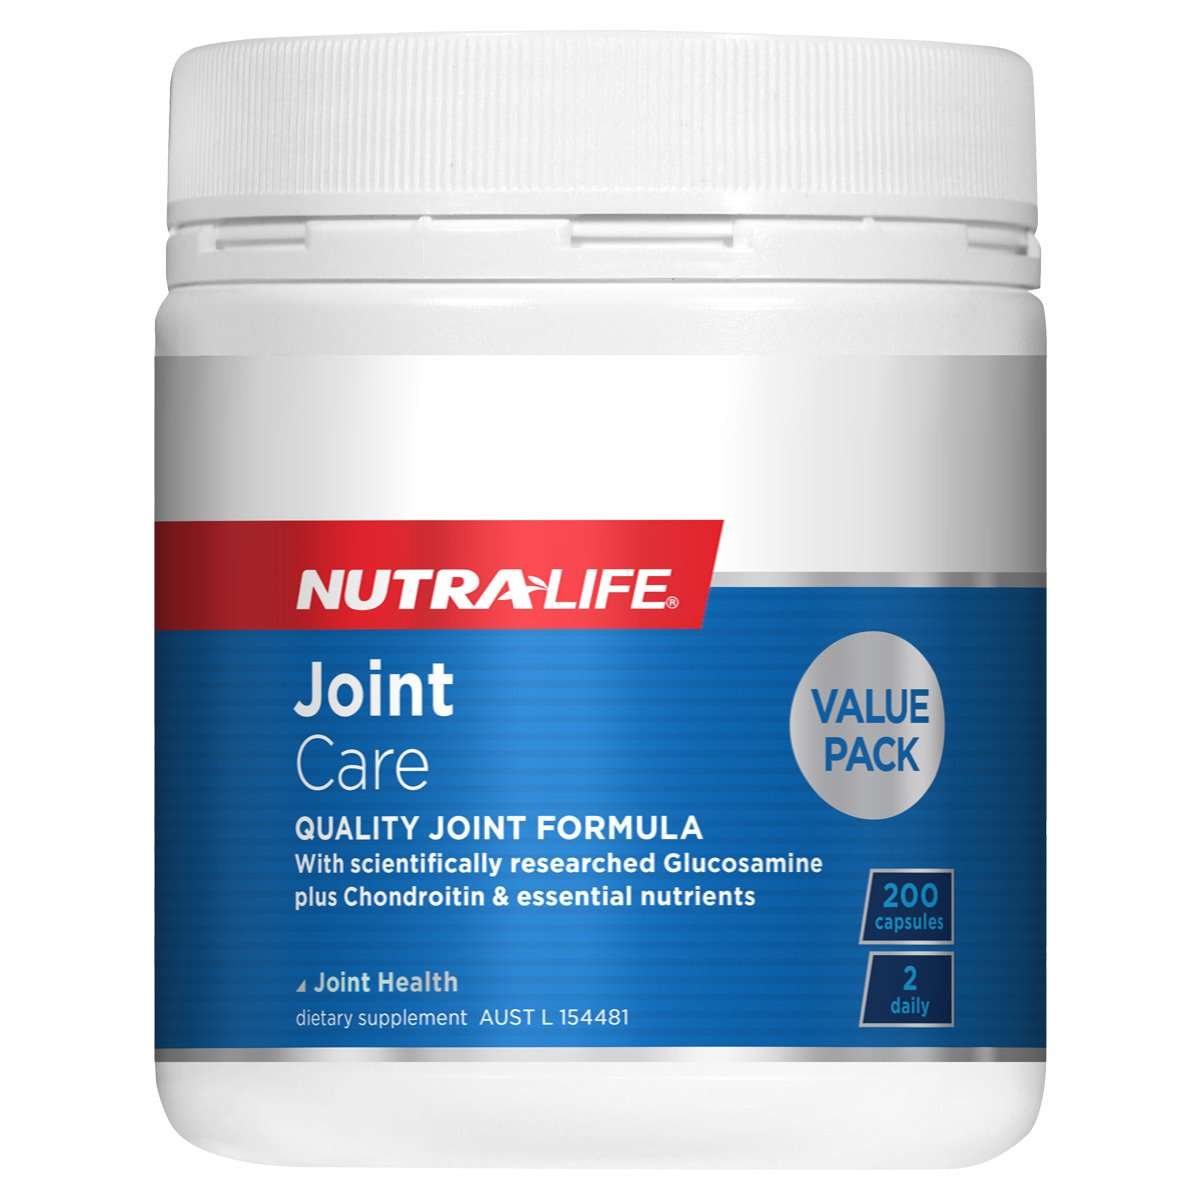 NUTRA-LIFE Joint Care - 200 Capsules